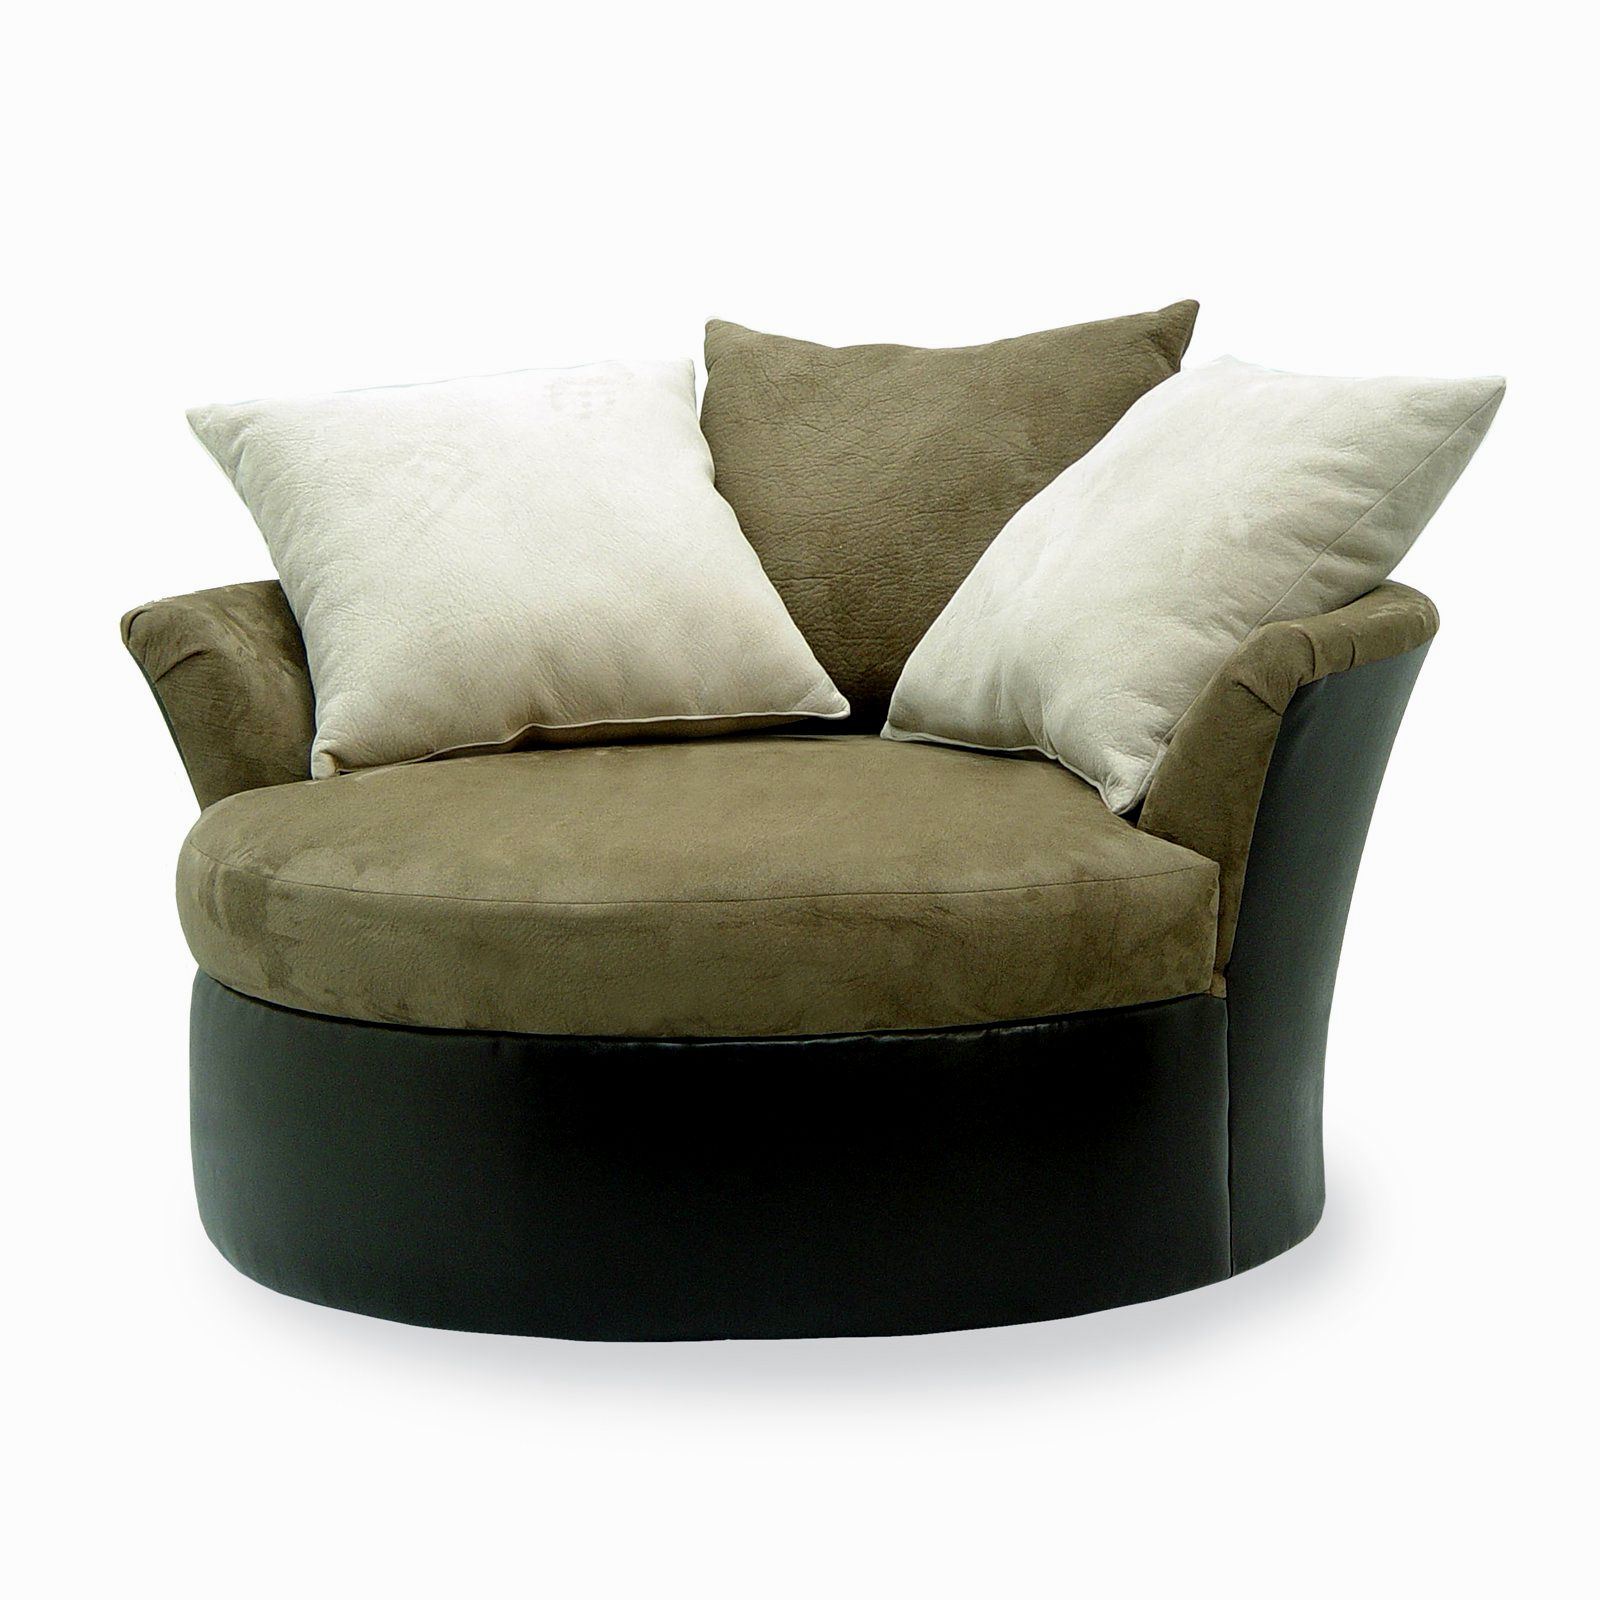 unique double chaise lounge sofa ideas-Awesome Double Chaise Lounge sofa Collection